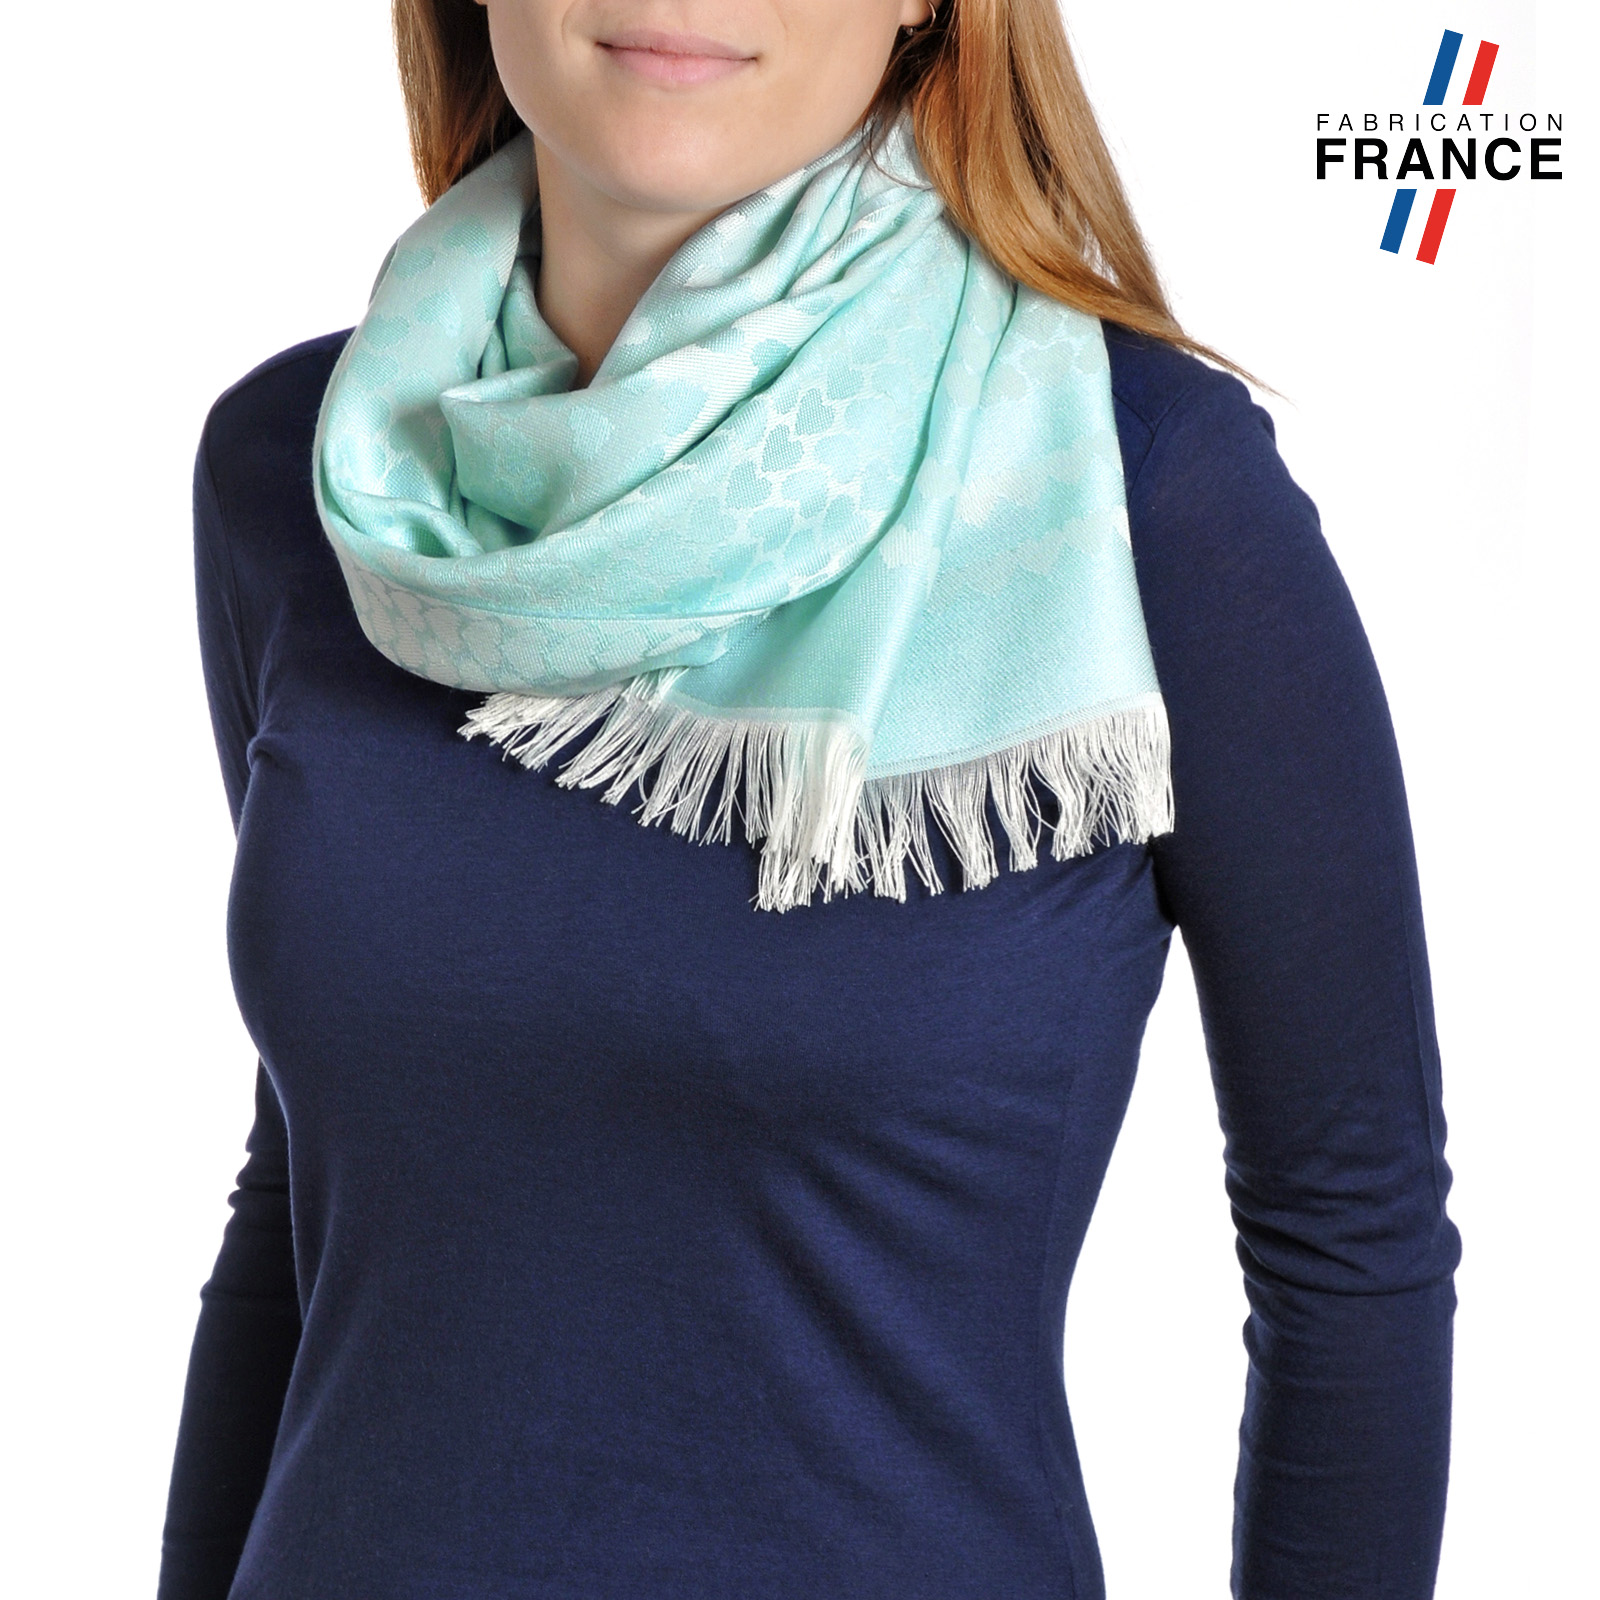 AT-04272-VF16-T-LB_FR-echarpe-legere-turquoise-fabrication-france